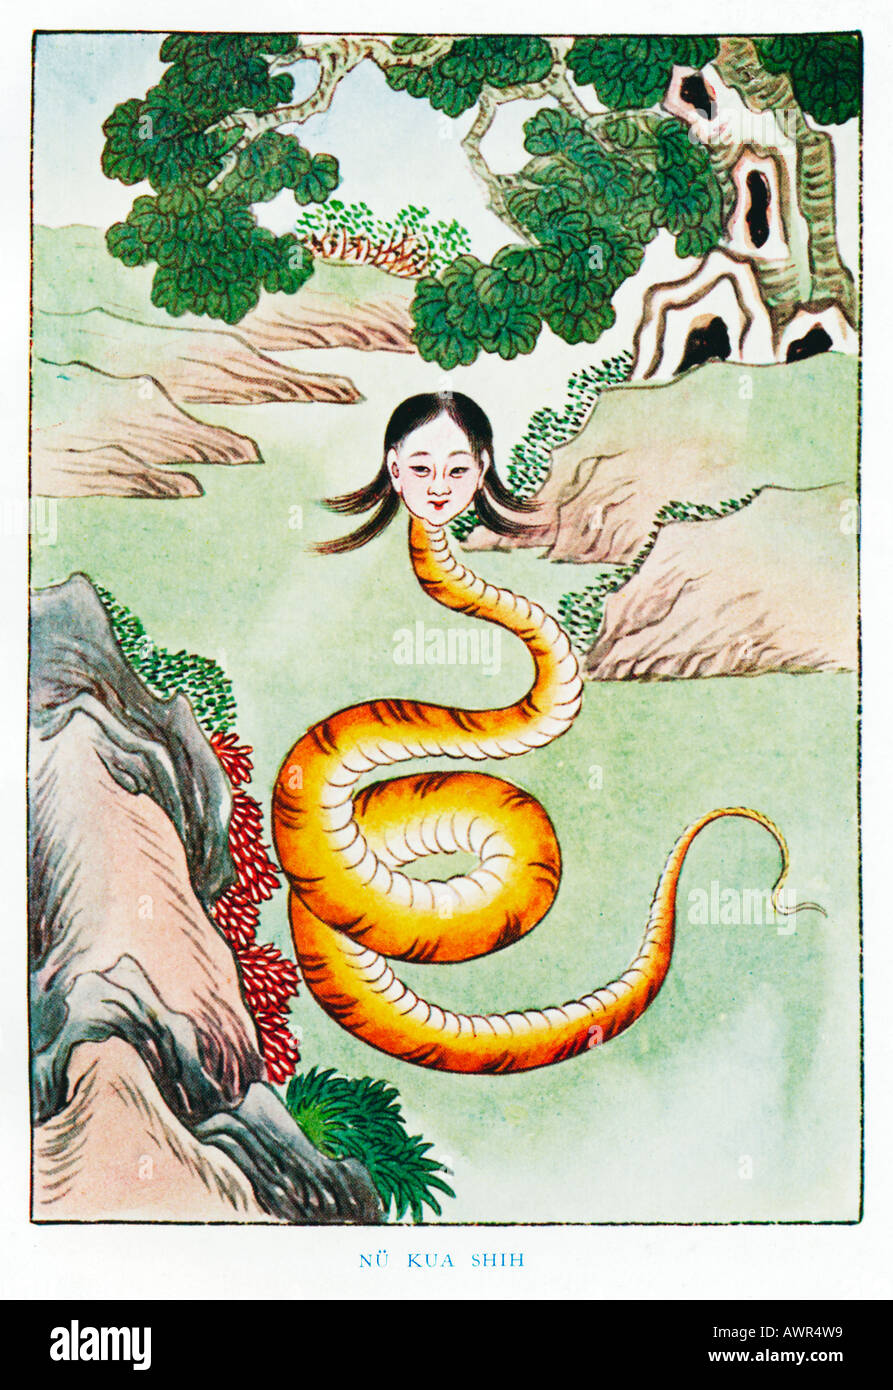 Nu Kua Shih 1920s illustration by a Chinese artist from a book on Myths and Legends of China - Stock Image